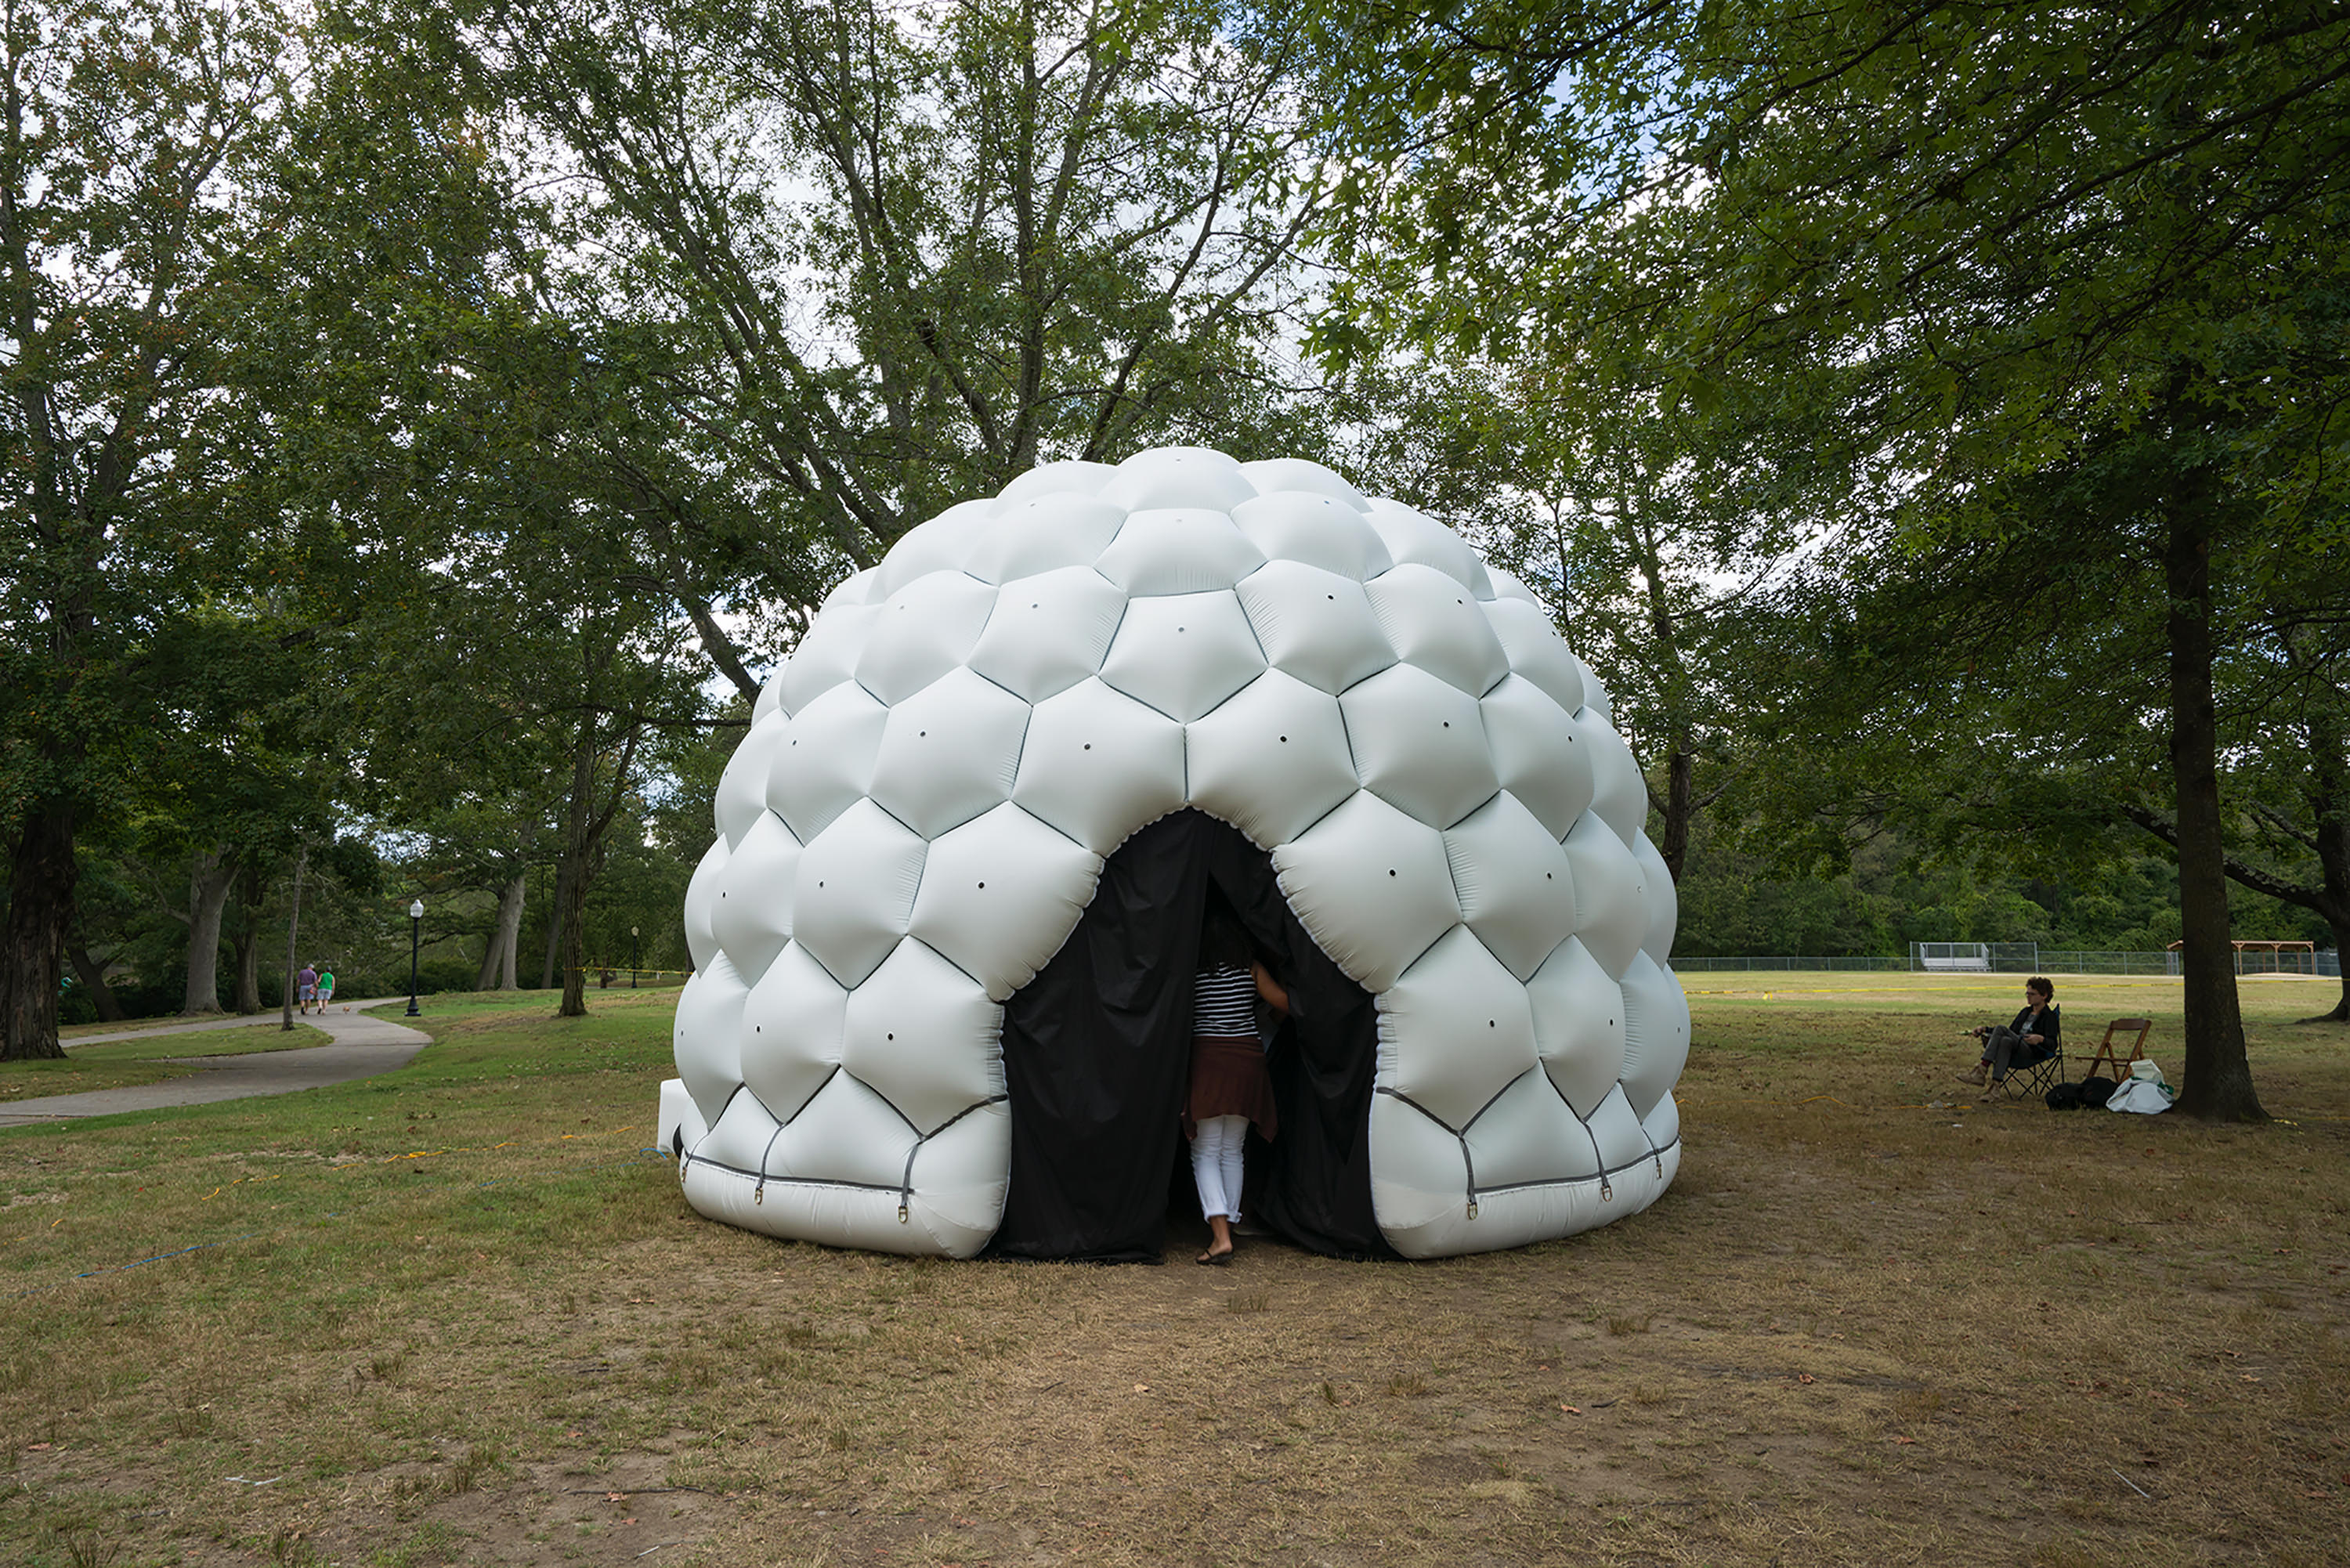 White inflatable dome structure with in a park.